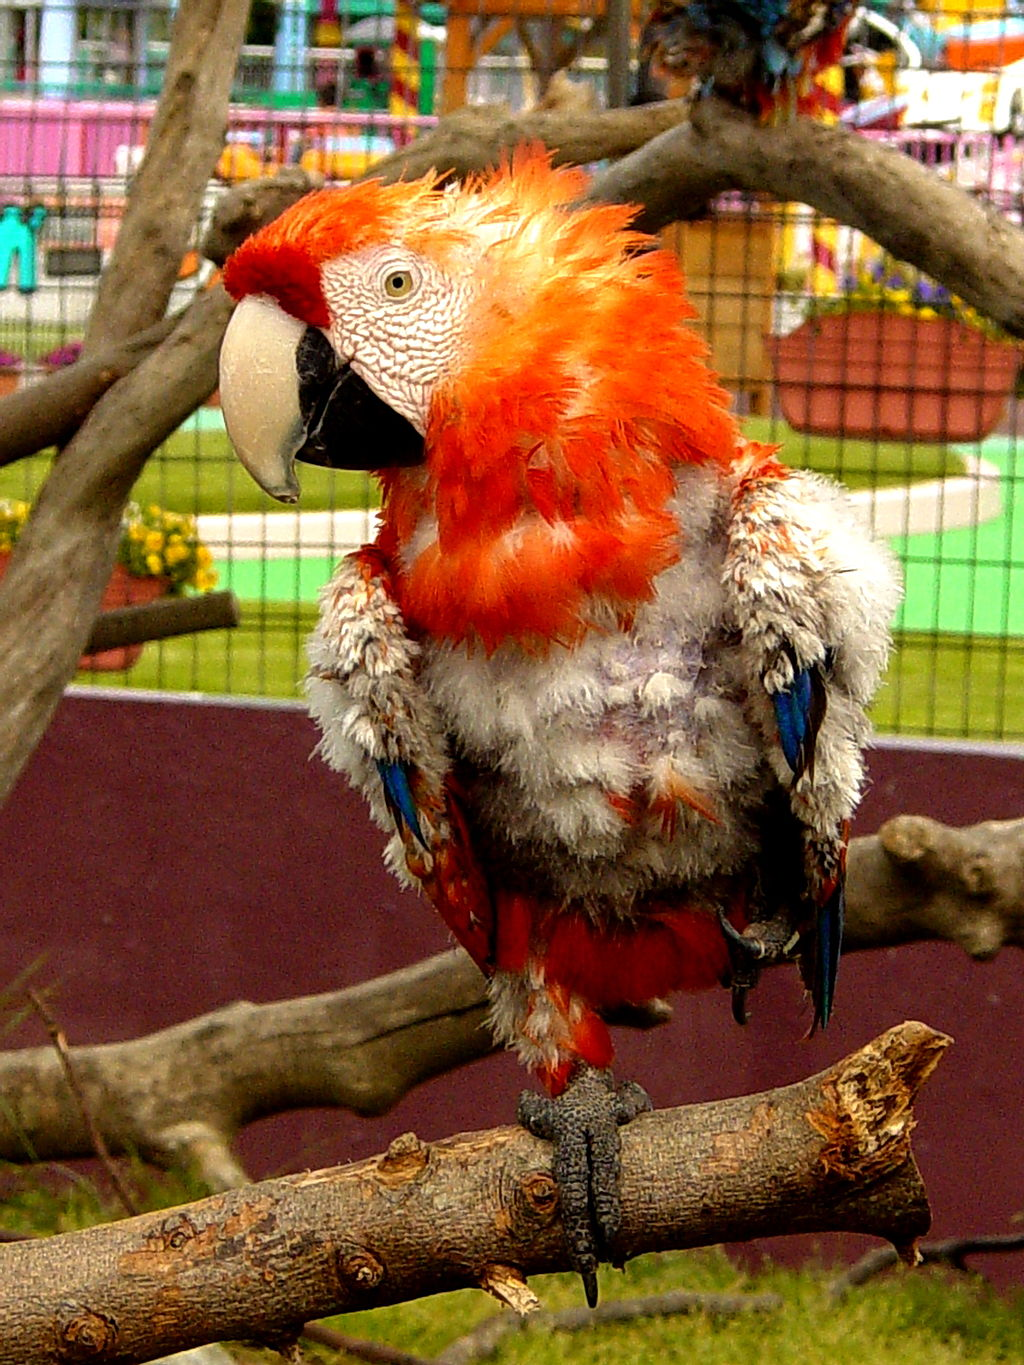 Feather Plucking in Parrots: Why does my parrot pluck its